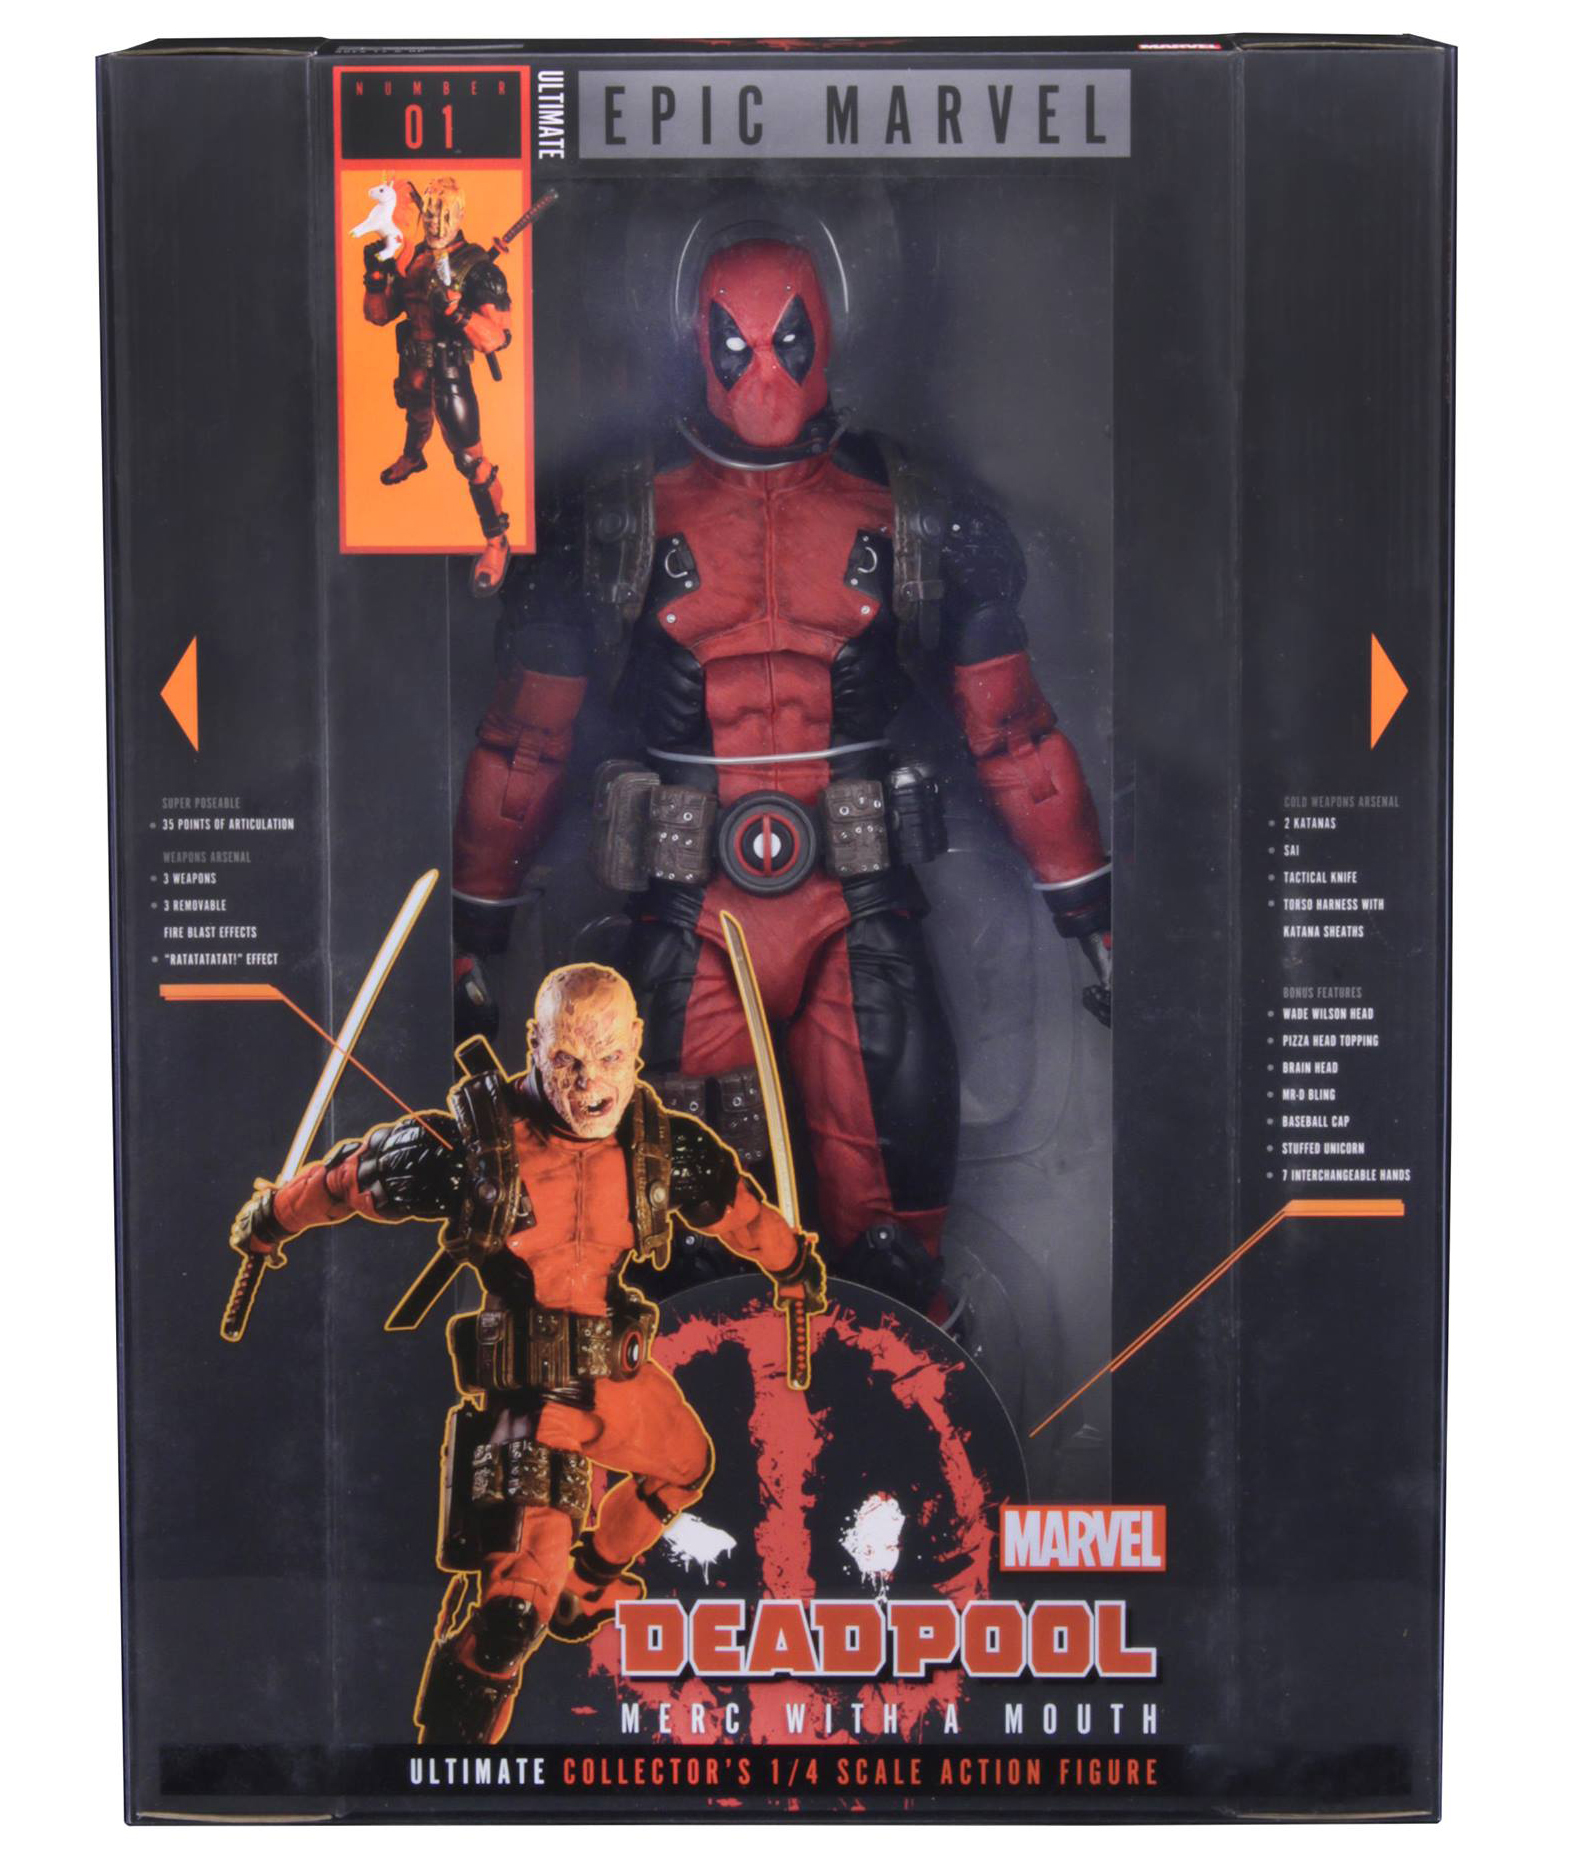 Ultimate-Deadpool-Neca-packaging-3